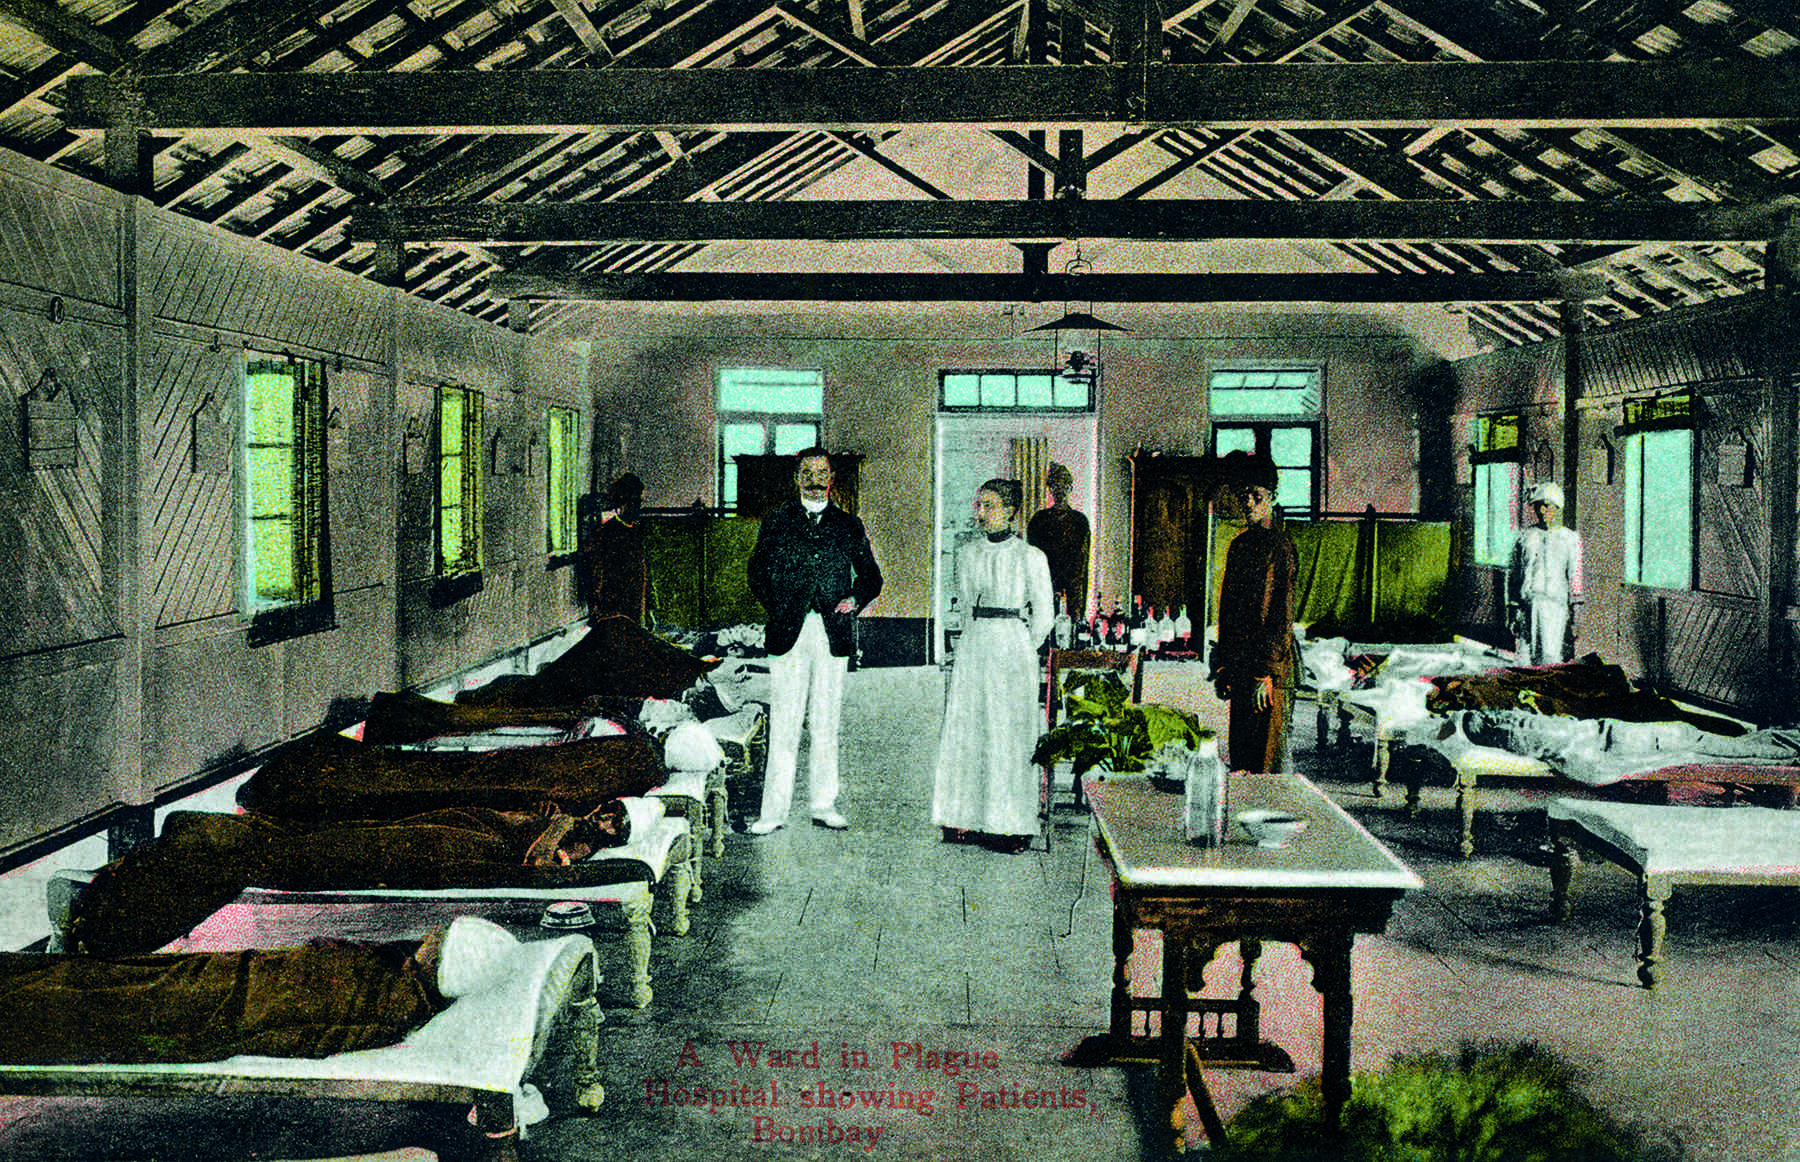 'A Ward in Plague Hospital', Bombay, showing Patients, by Clifton & Co., c. 1903. Coloured collotype, Divided back, 13.85 x 8.8 cm, 5.45 x 3.46 in.